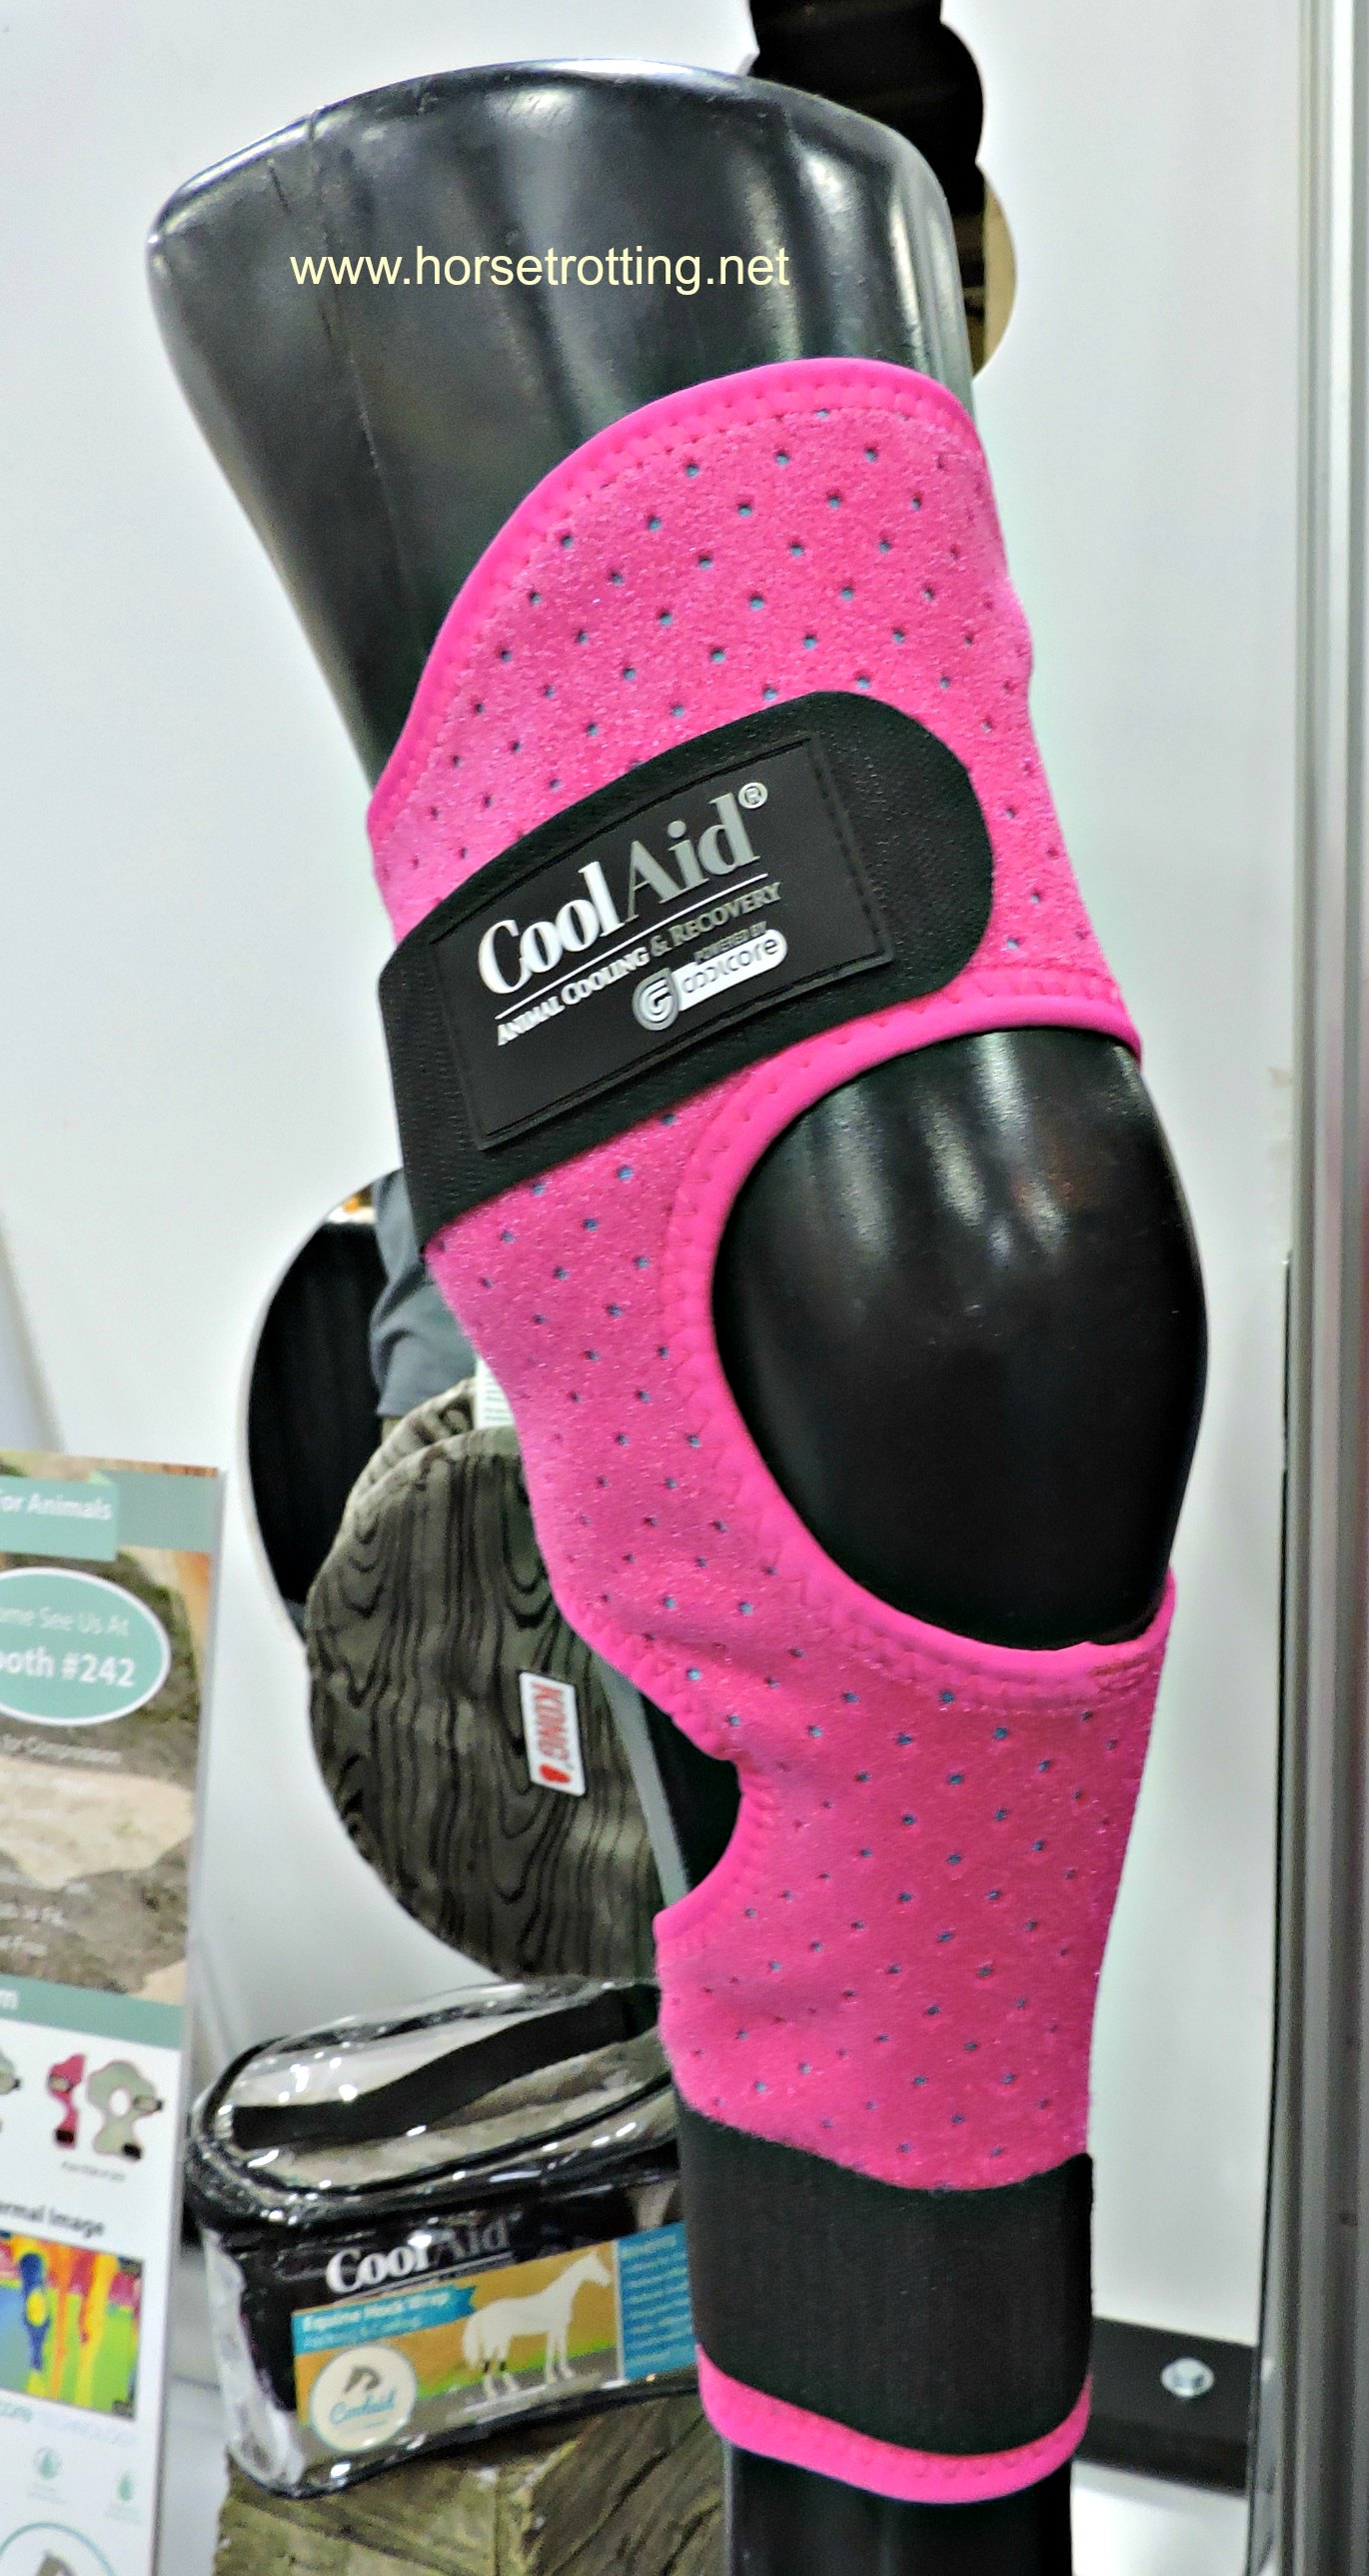 CoolAid horse hock icing support